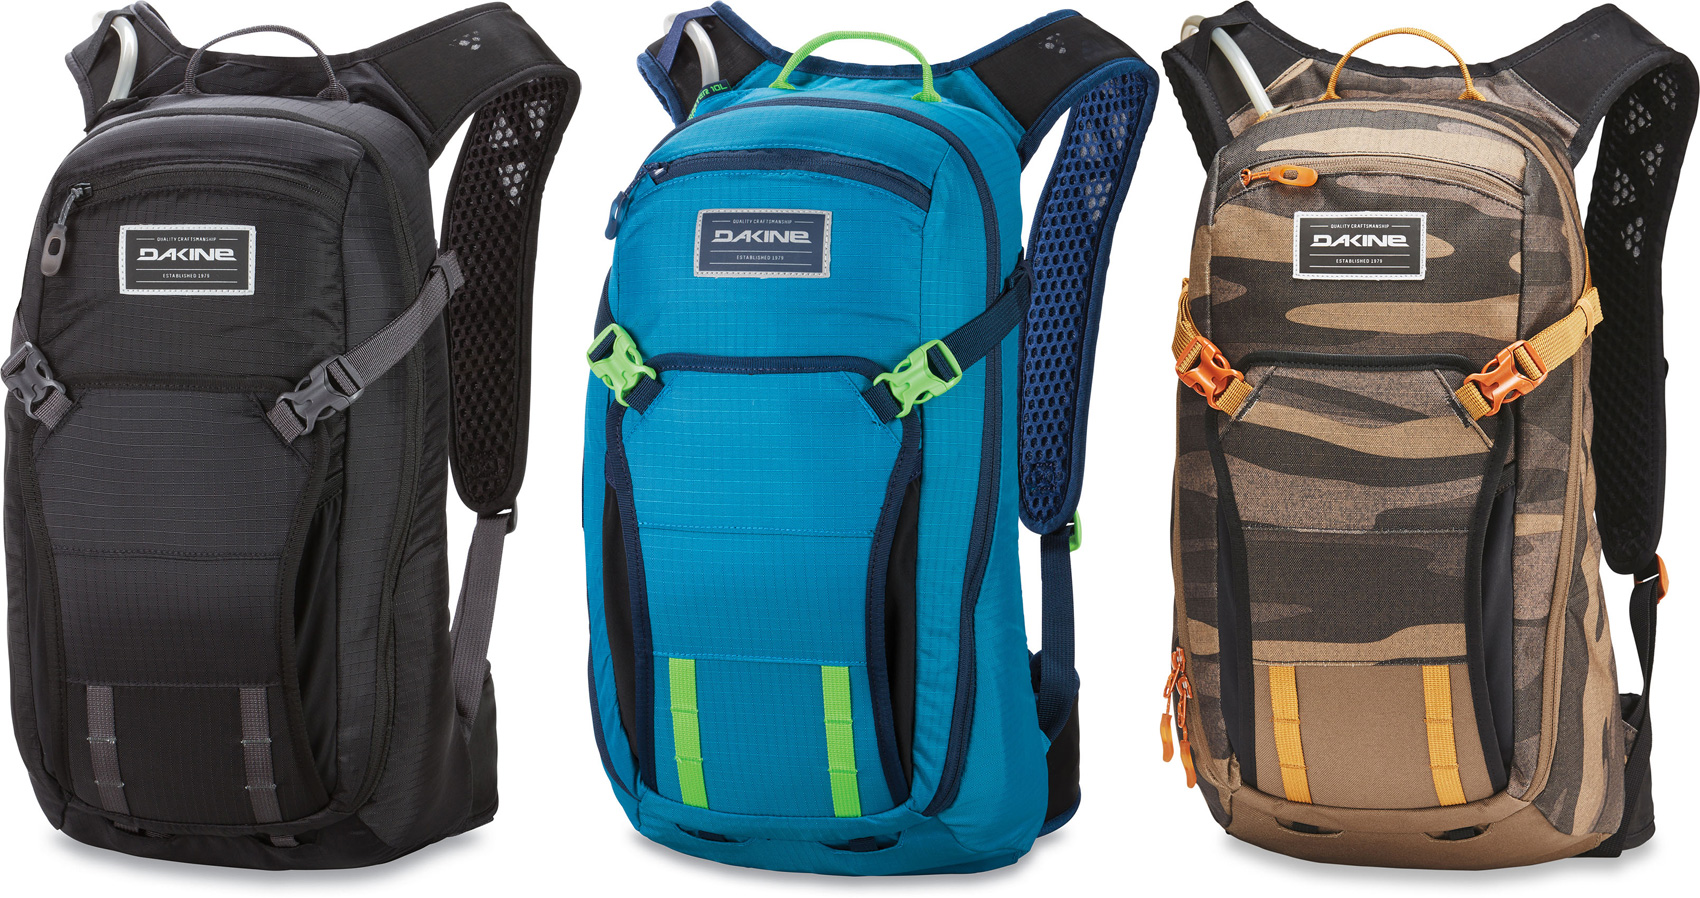 Dakine Packs Shop Range